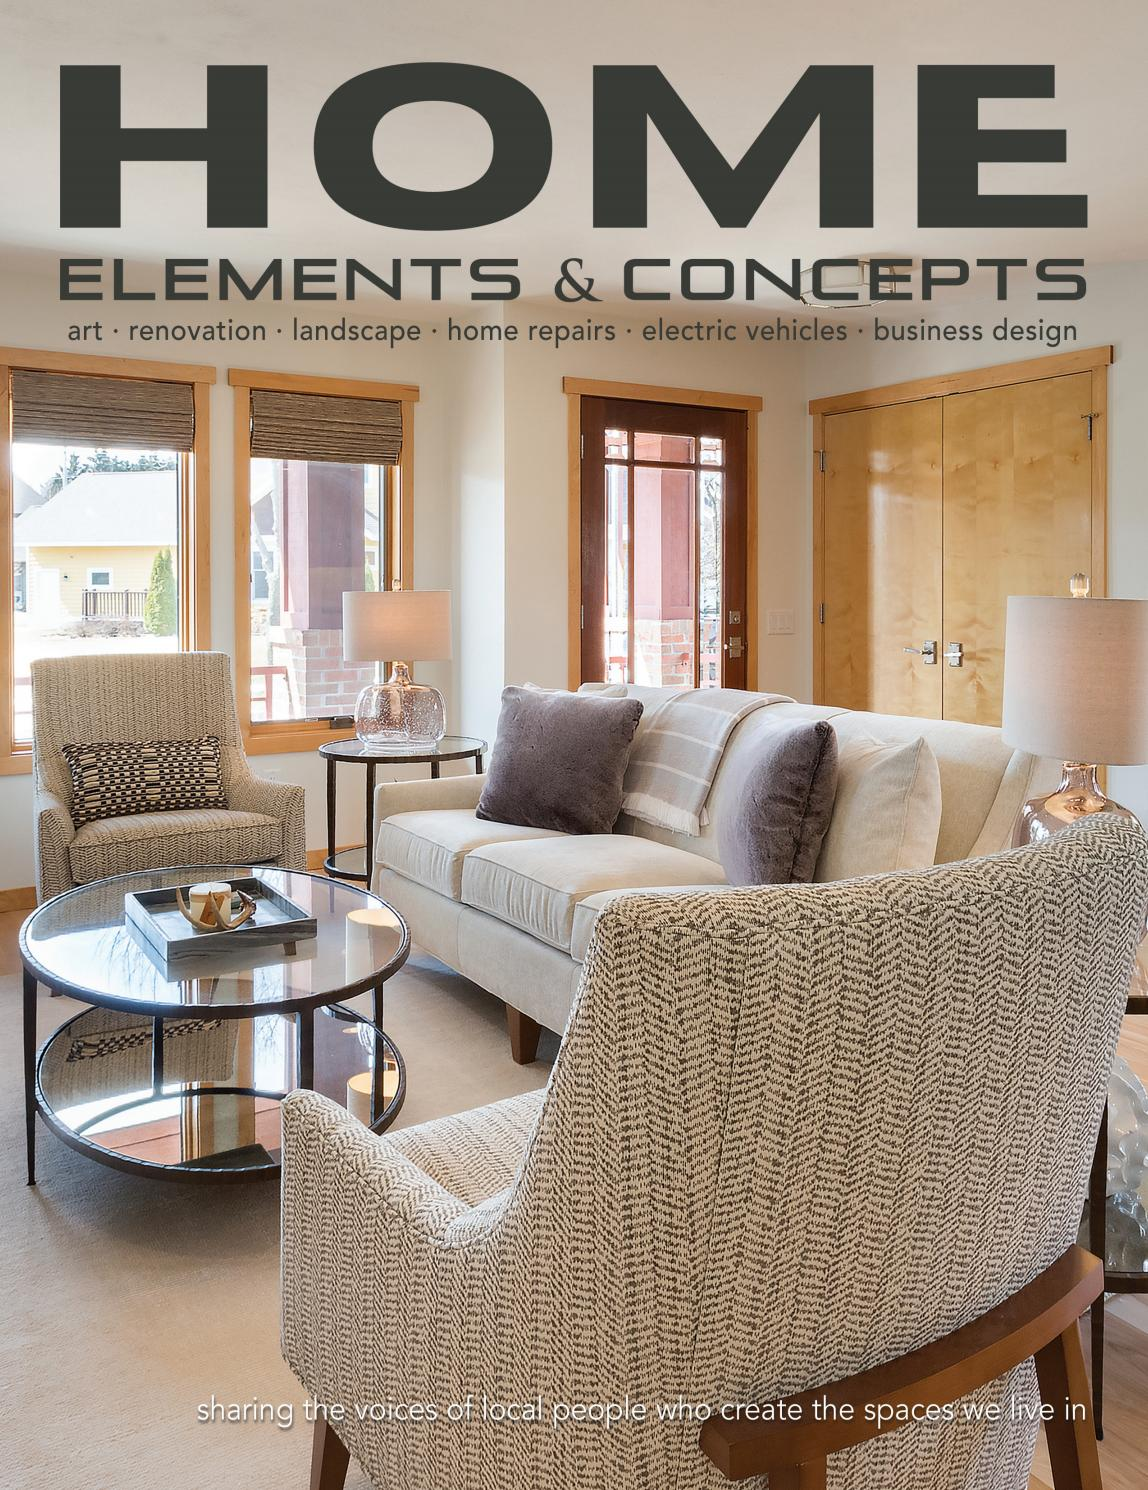 Home Elements Concepts August October 2018 By Towns Associates Issuu